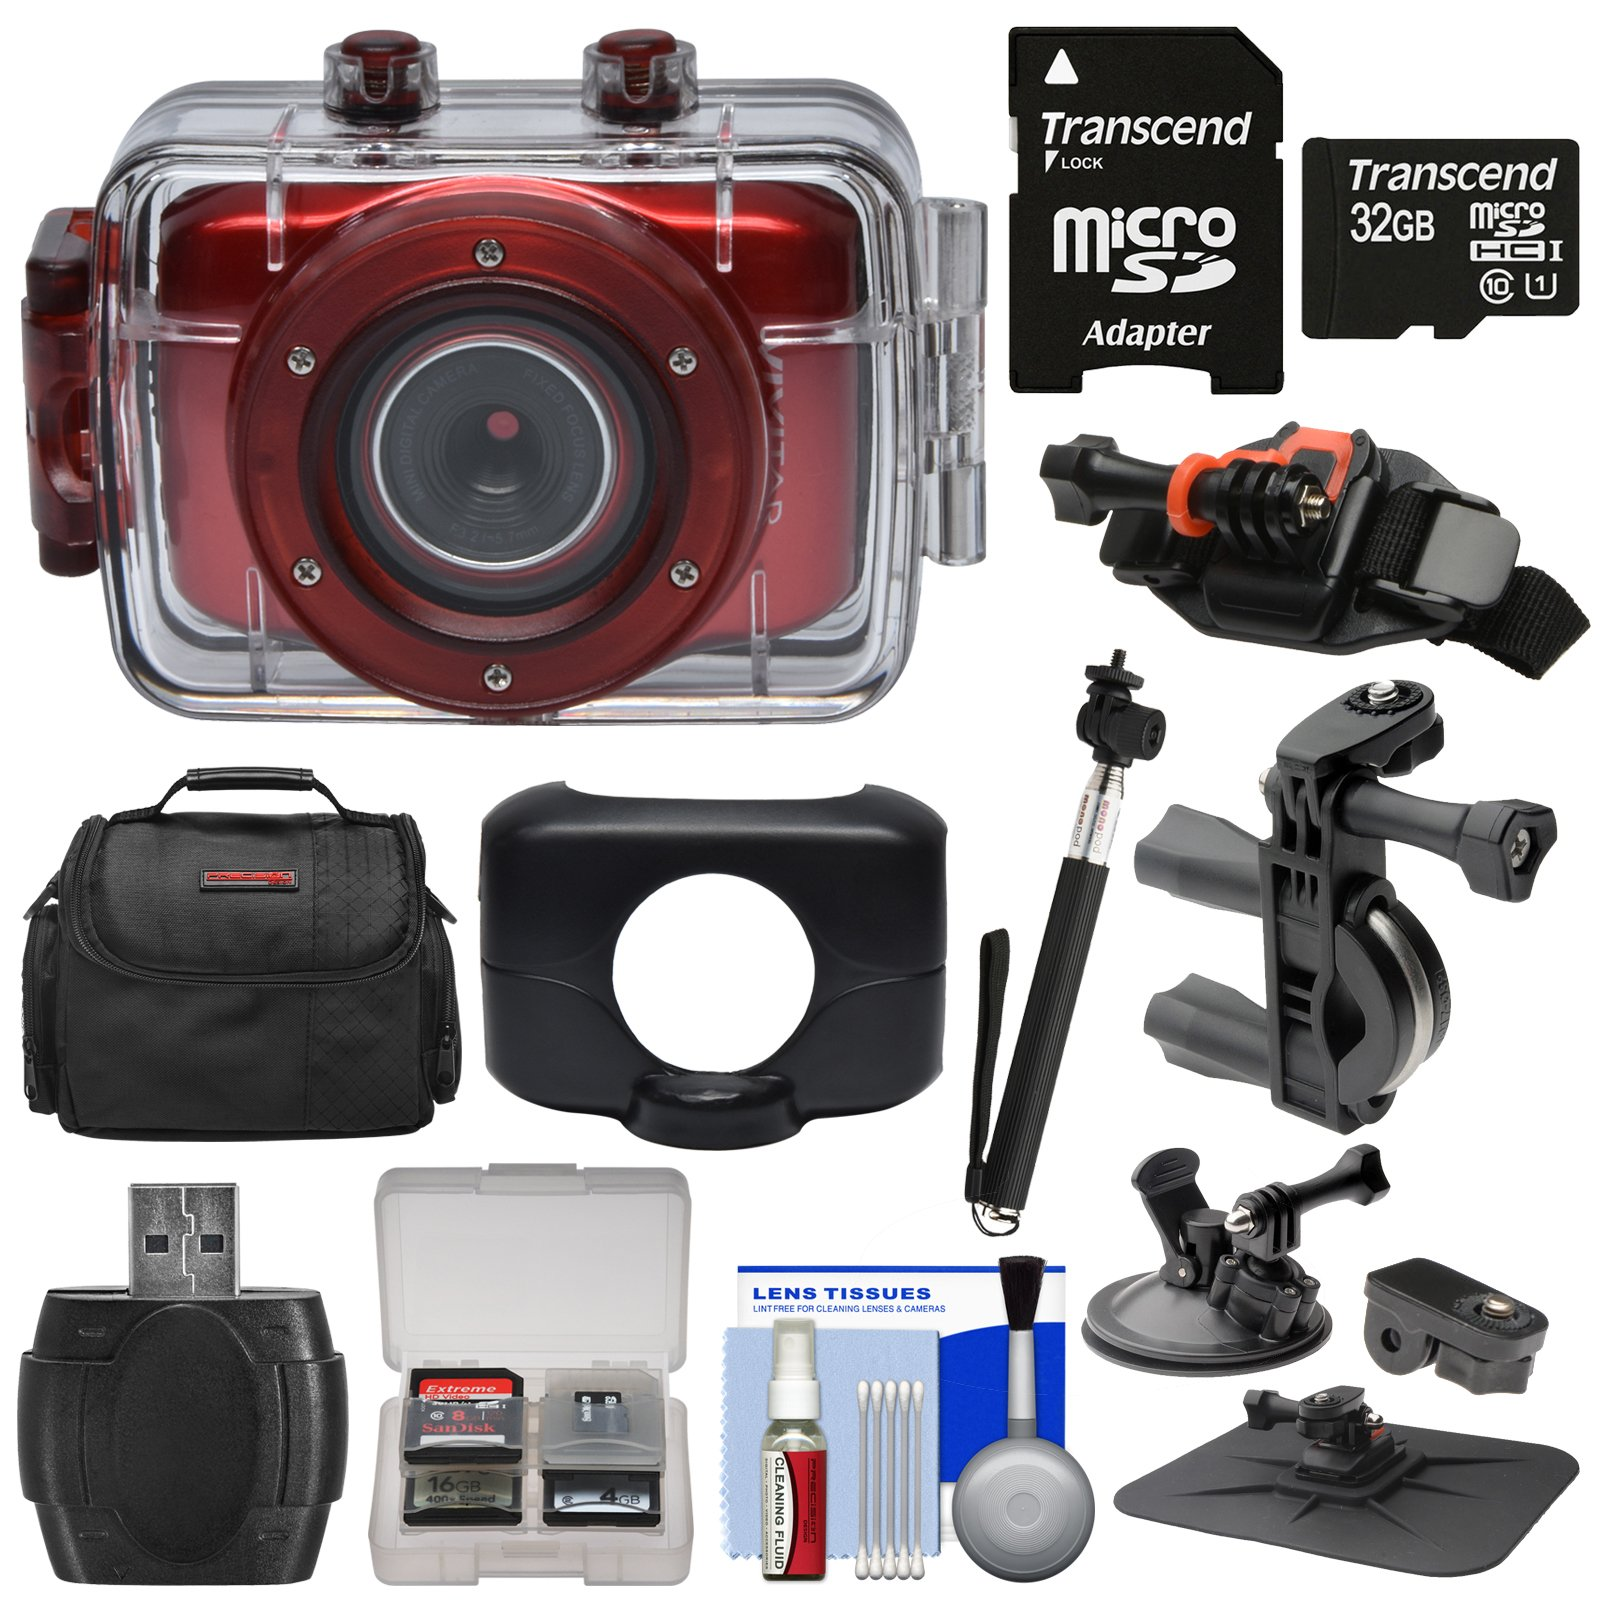 Vivitar DVR781HD HD Waterproof Action Video Camera Camcorder (Red) with 32GB Card + Suction Cup, Helmet, Bike & Dashboard Mounts + Case + Selfie Stick + Kit